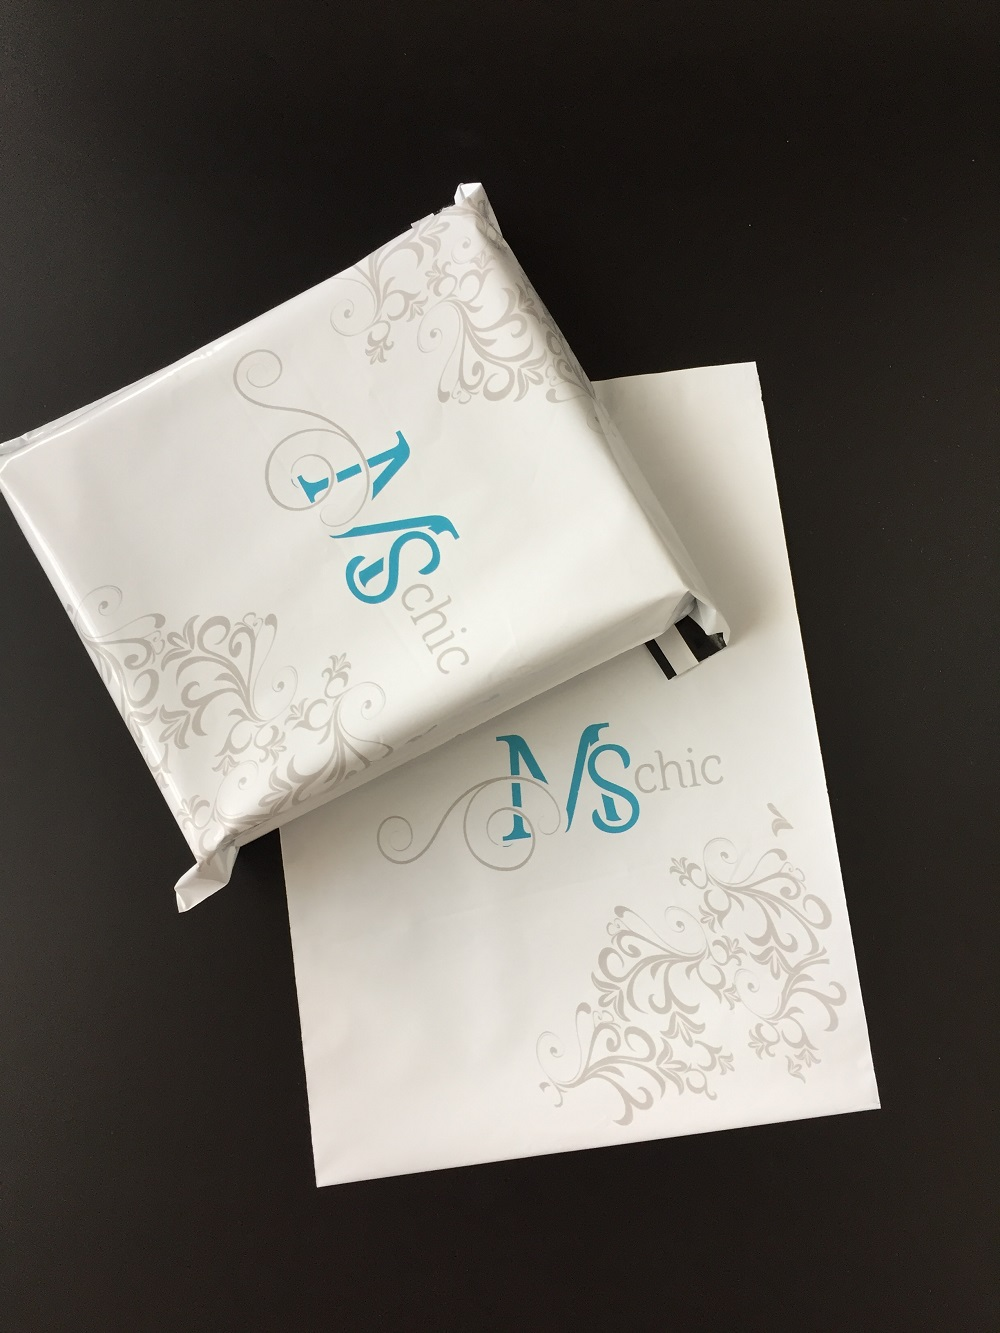 High class customized design logo printing new virgin material plastic envelope with seal